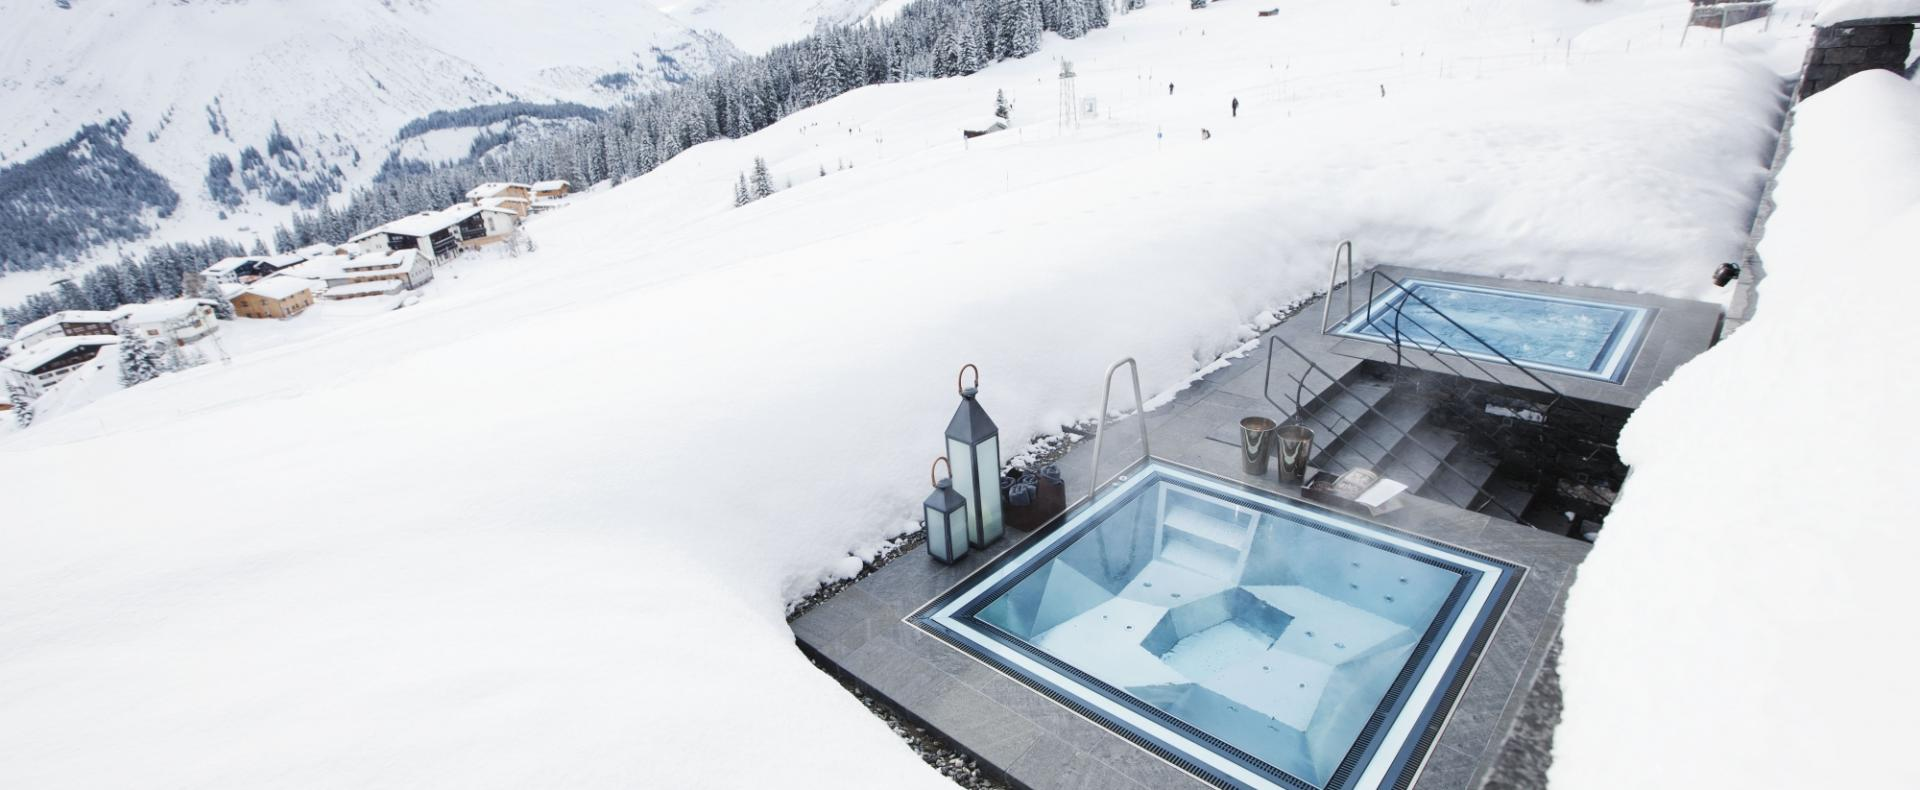 Hot-Tubs-Chalet-N-Lech-Ultimate-Luxury-Chalets-UltraVilla